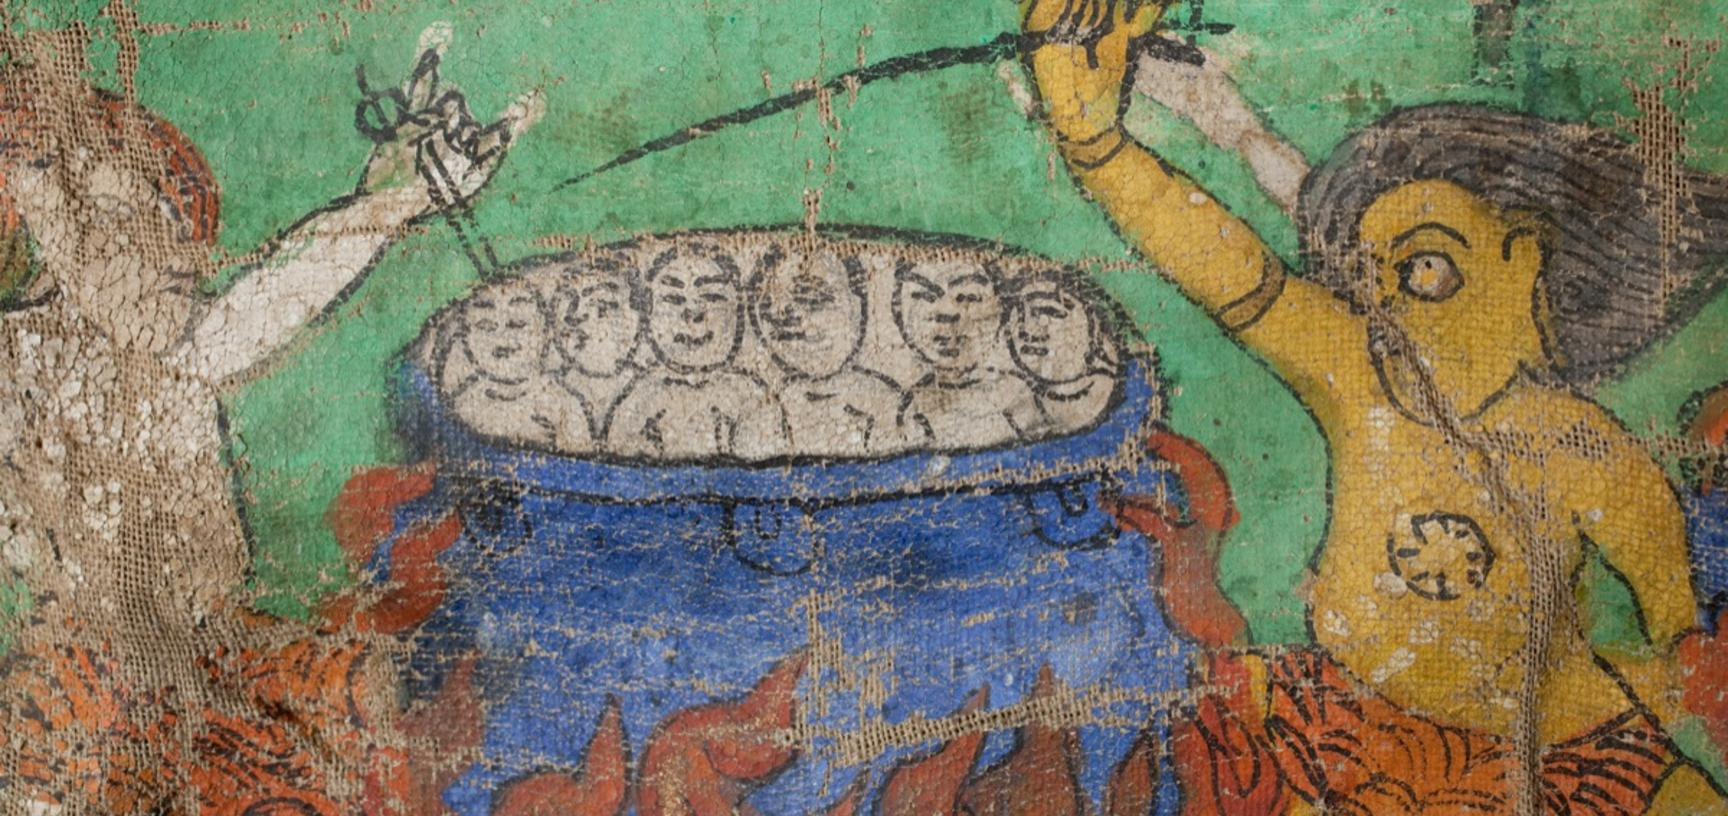 Detail of victims being boiled alive from a thanka painting describing the torments of hell. Photograph by Patrick Sutherland. Pin, Spiti, Himachal Pradesh, India. 2010.